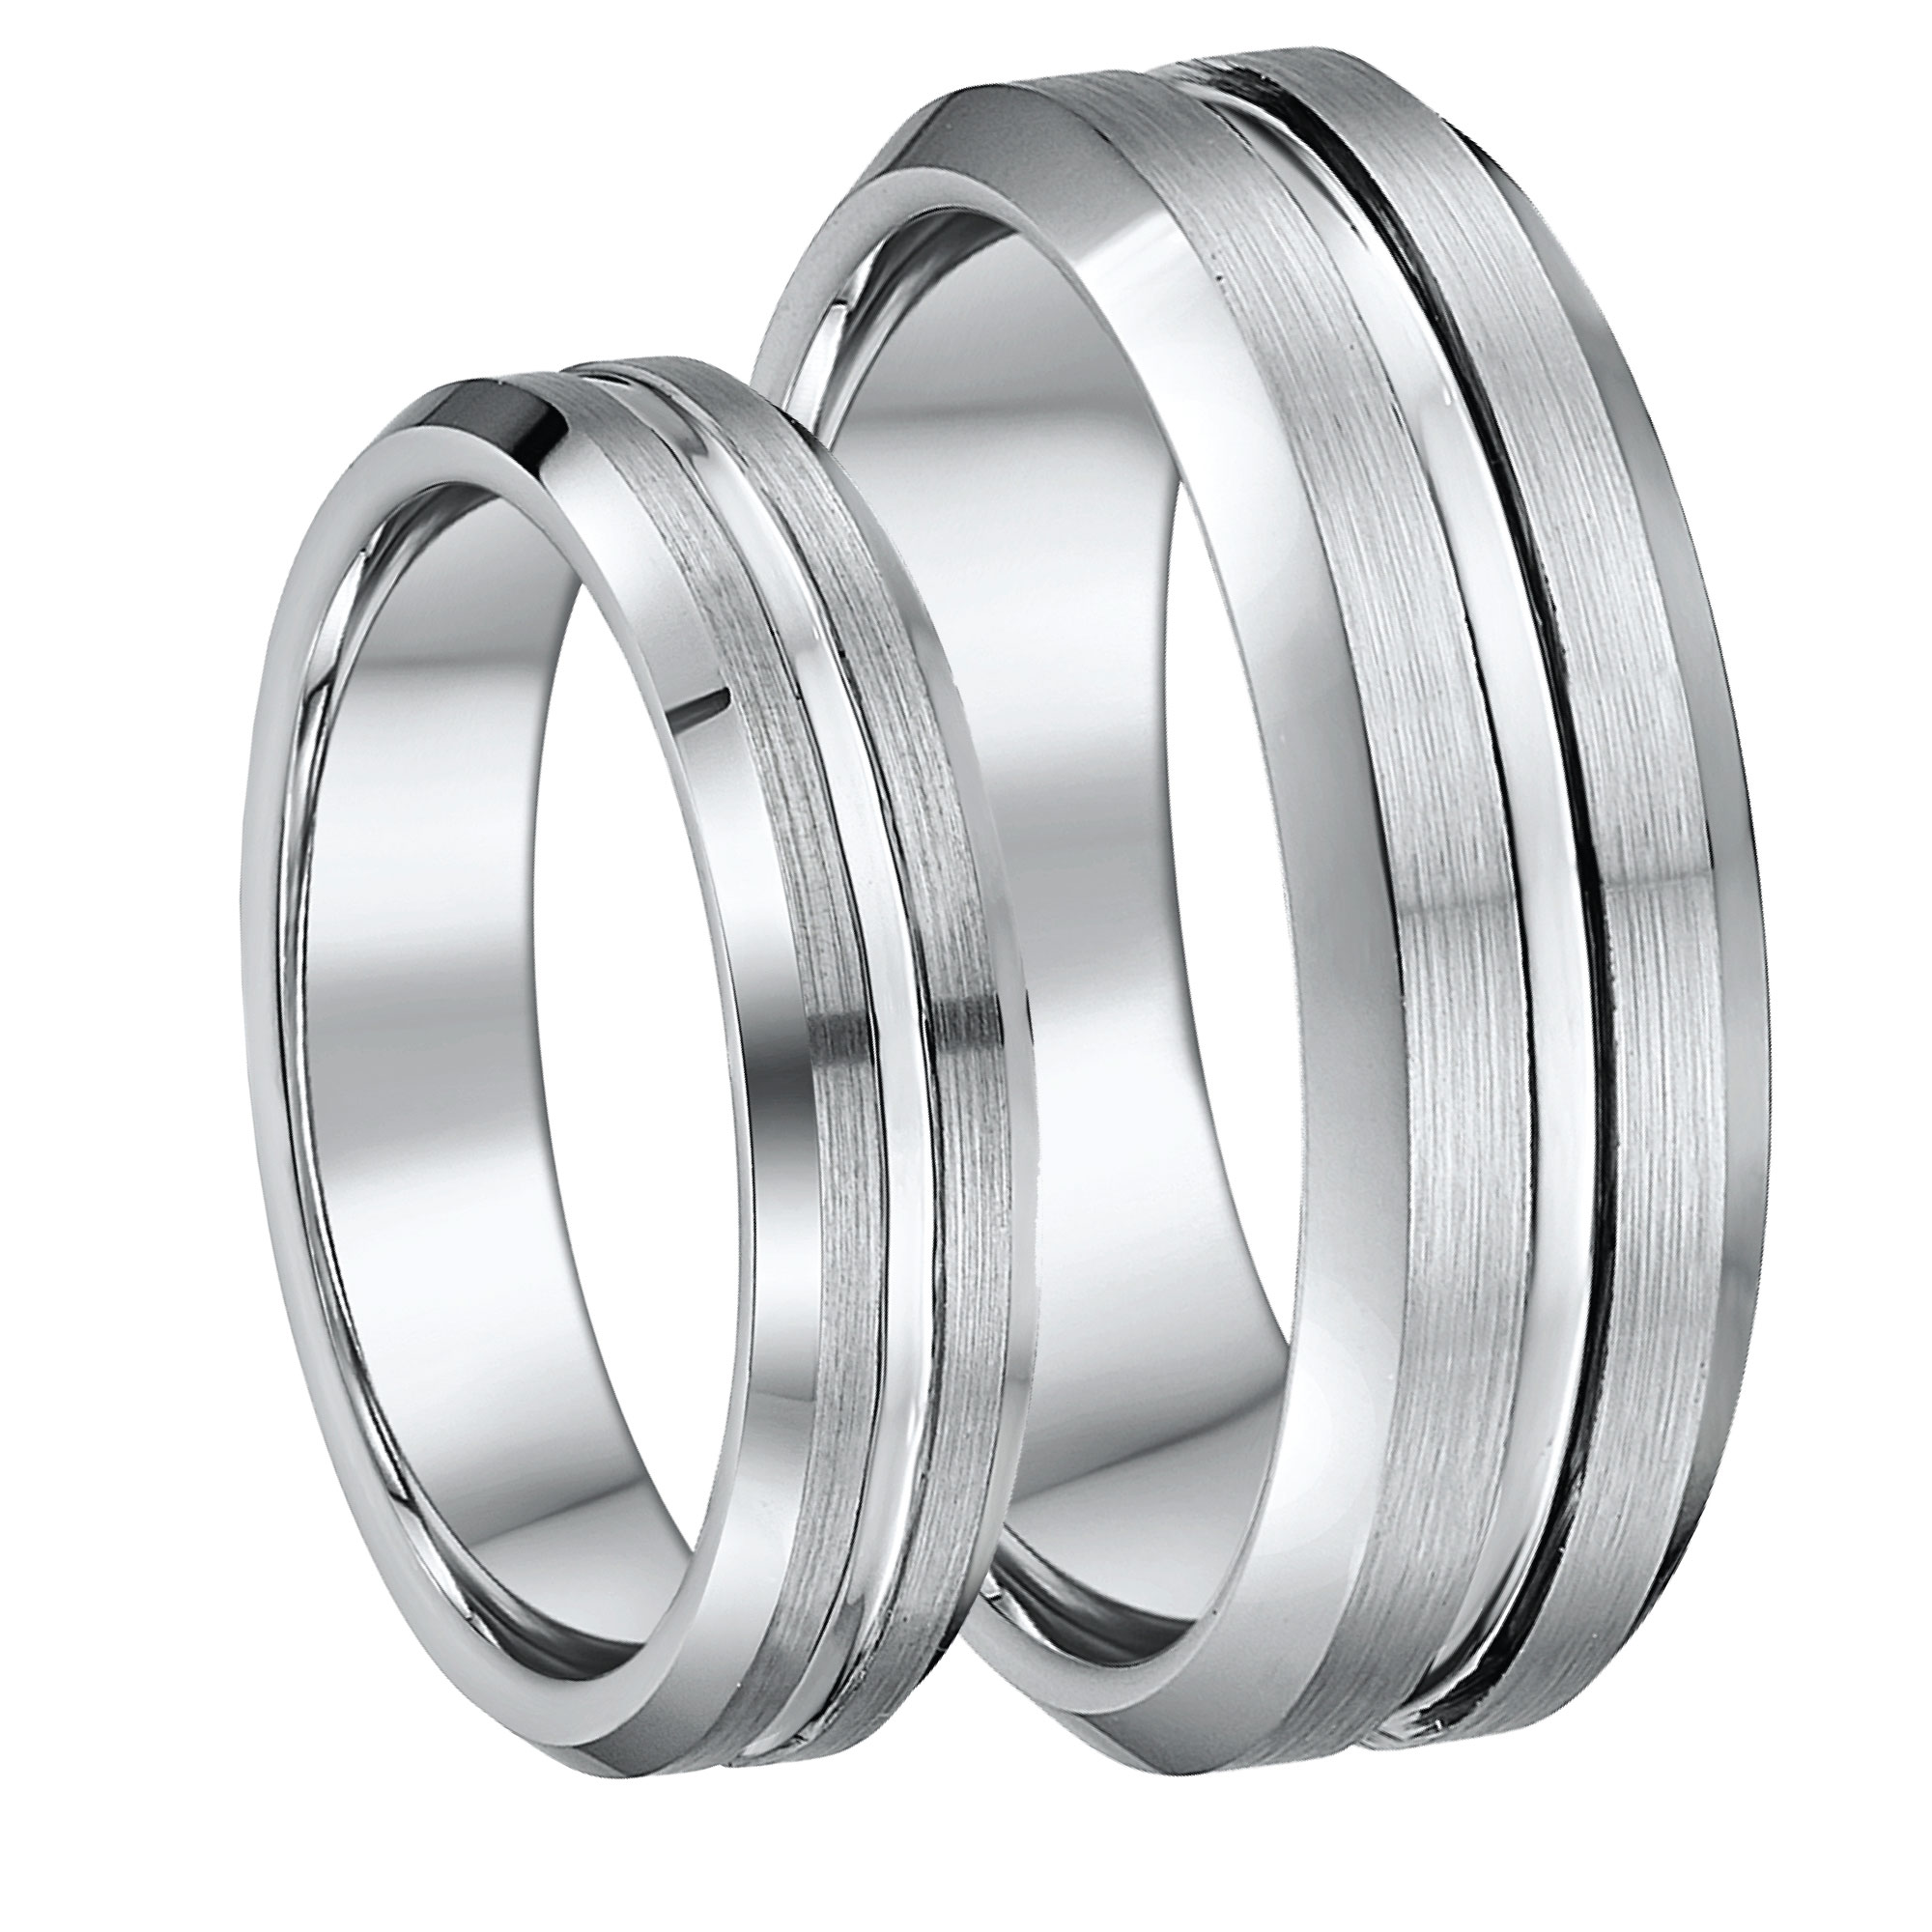 his hers 5mm 7mm tungsten wedding ring set tungsten sets at elma uk jewellery. Black Bedroom Furniture Sets. Home Design Ideas